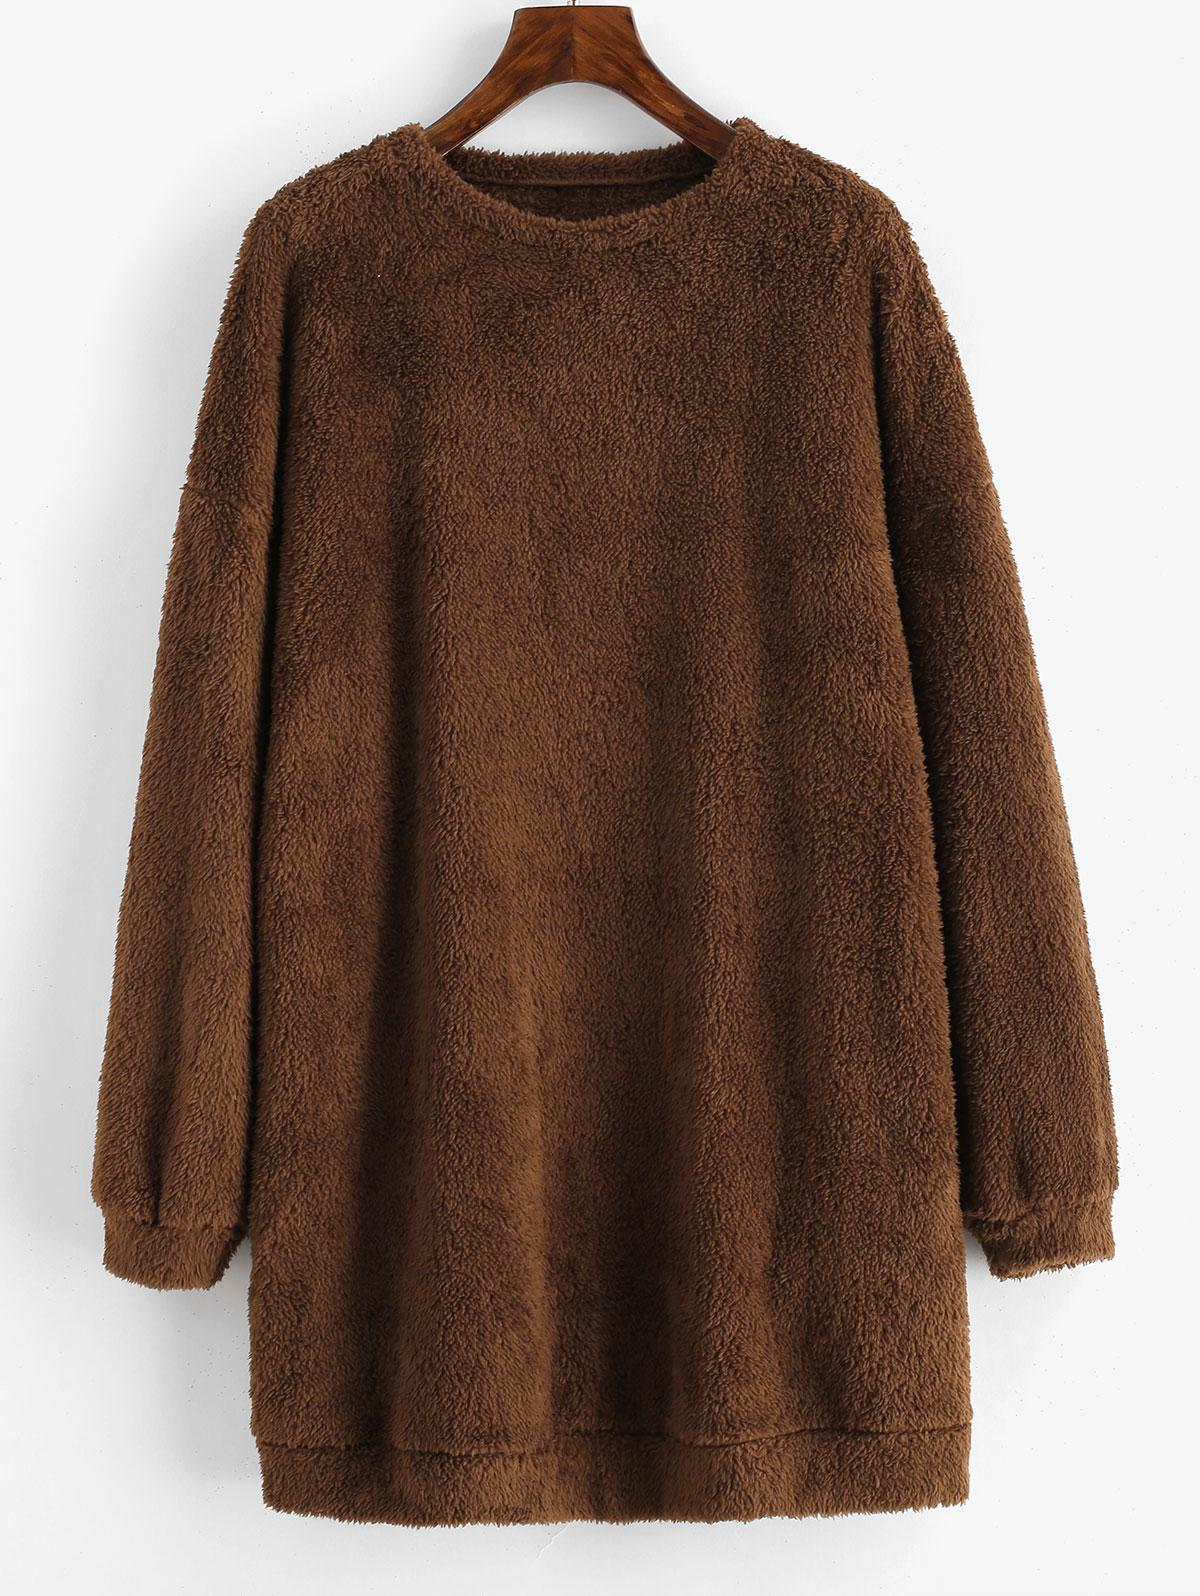 ZAFUL Plush Faux Fur Sweatshirt Dress